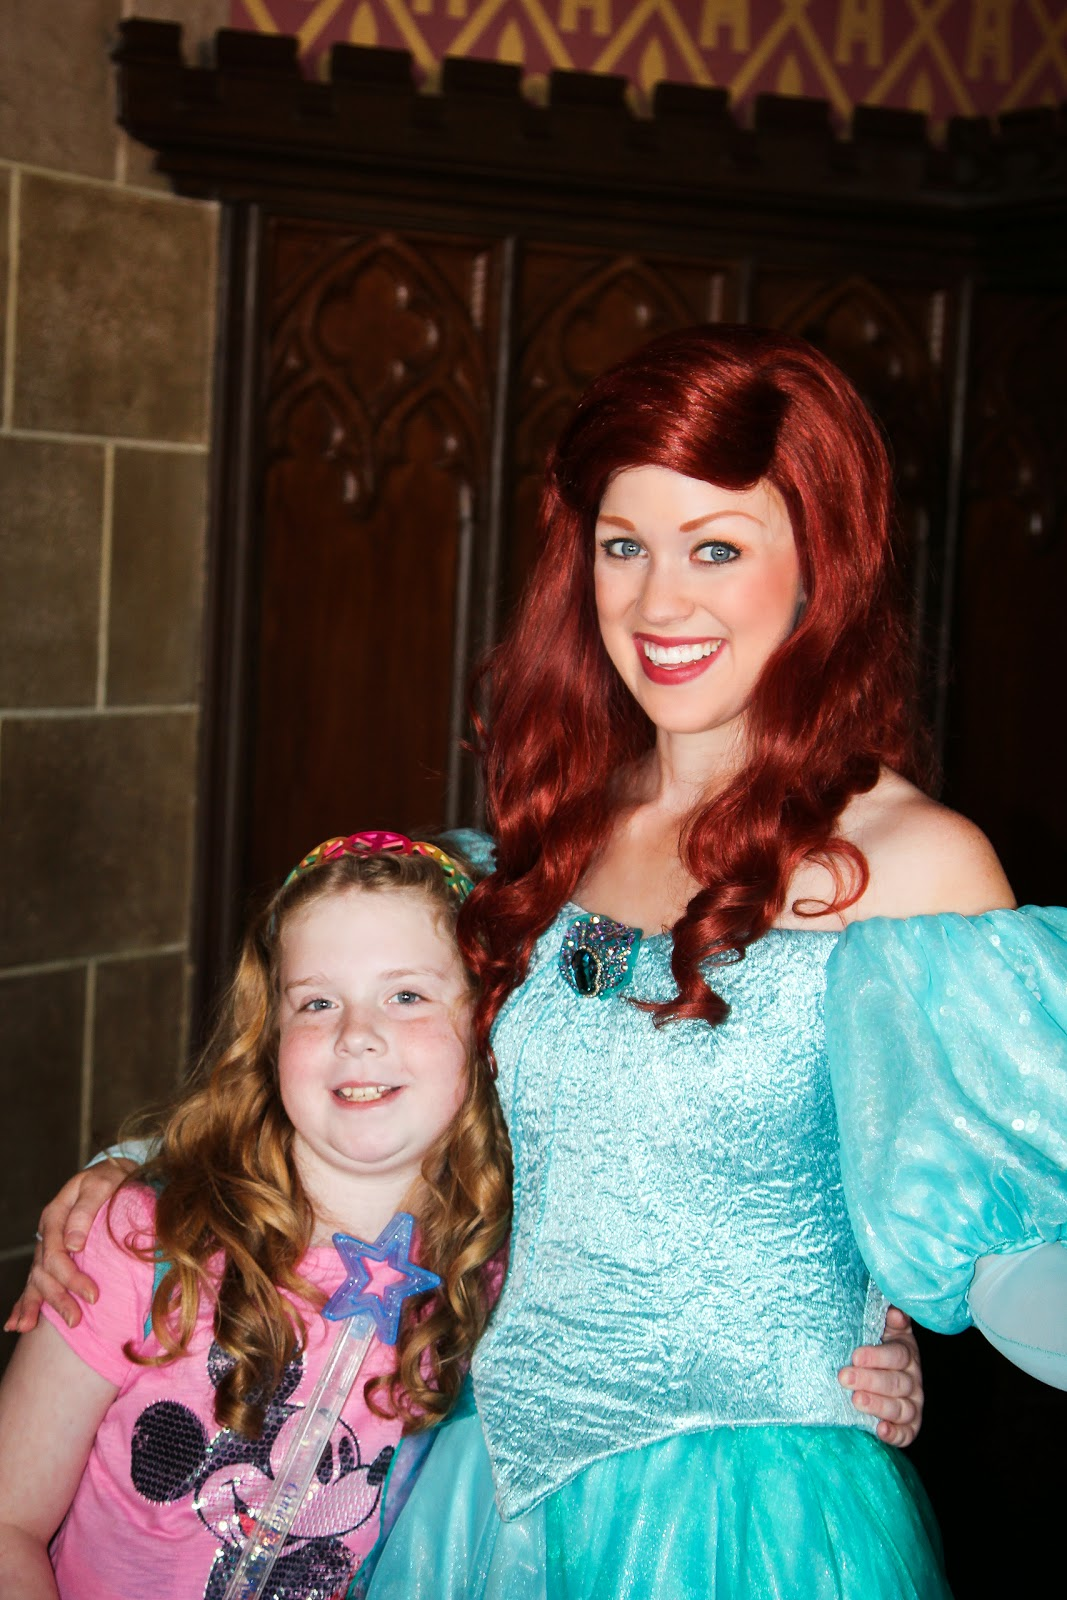 Princess Ariel, the Little Mermaid